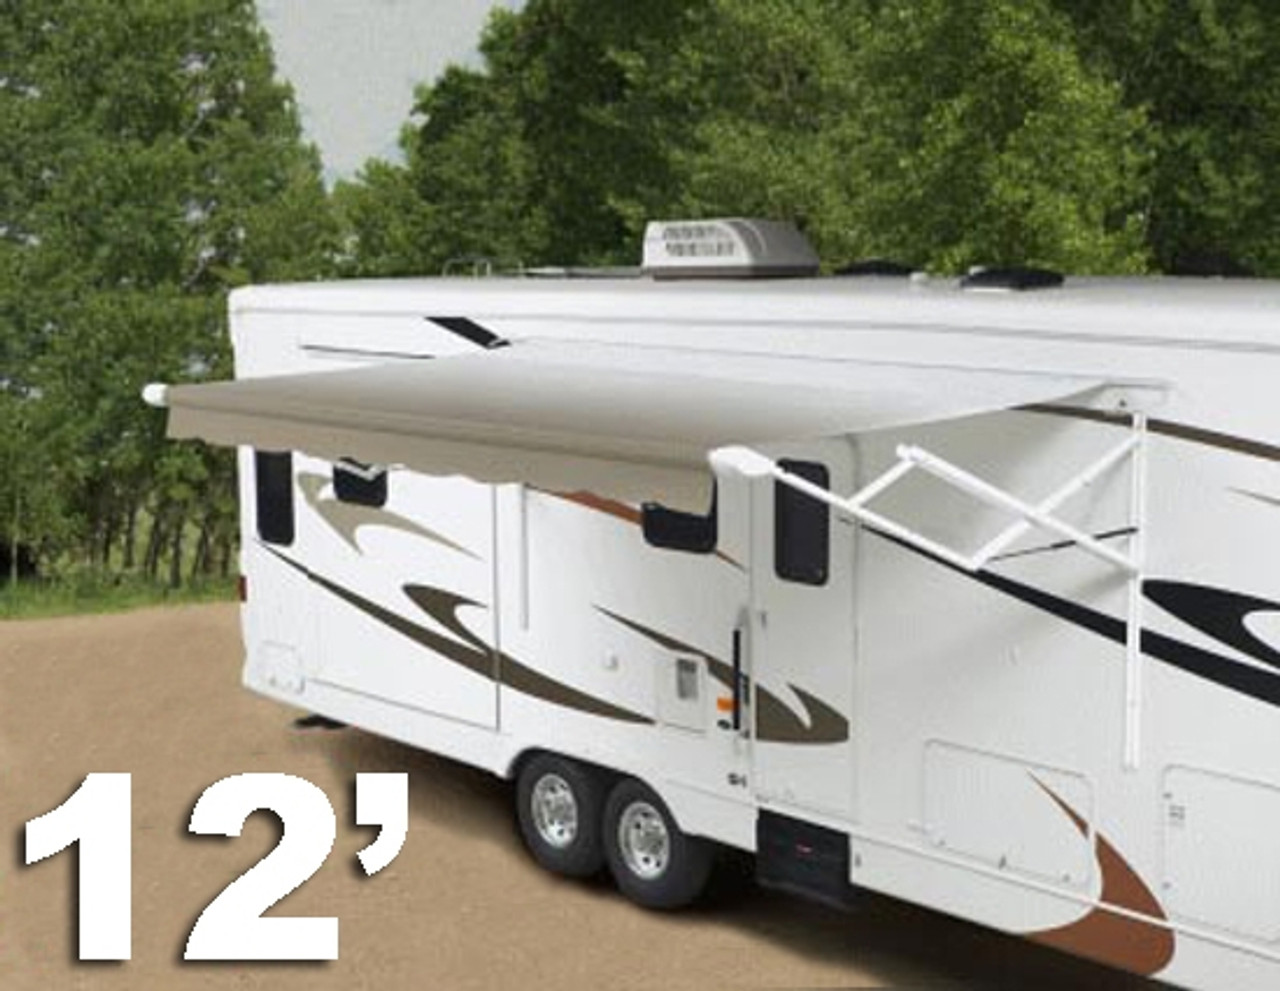 12' RV Patio Awnings, Complete